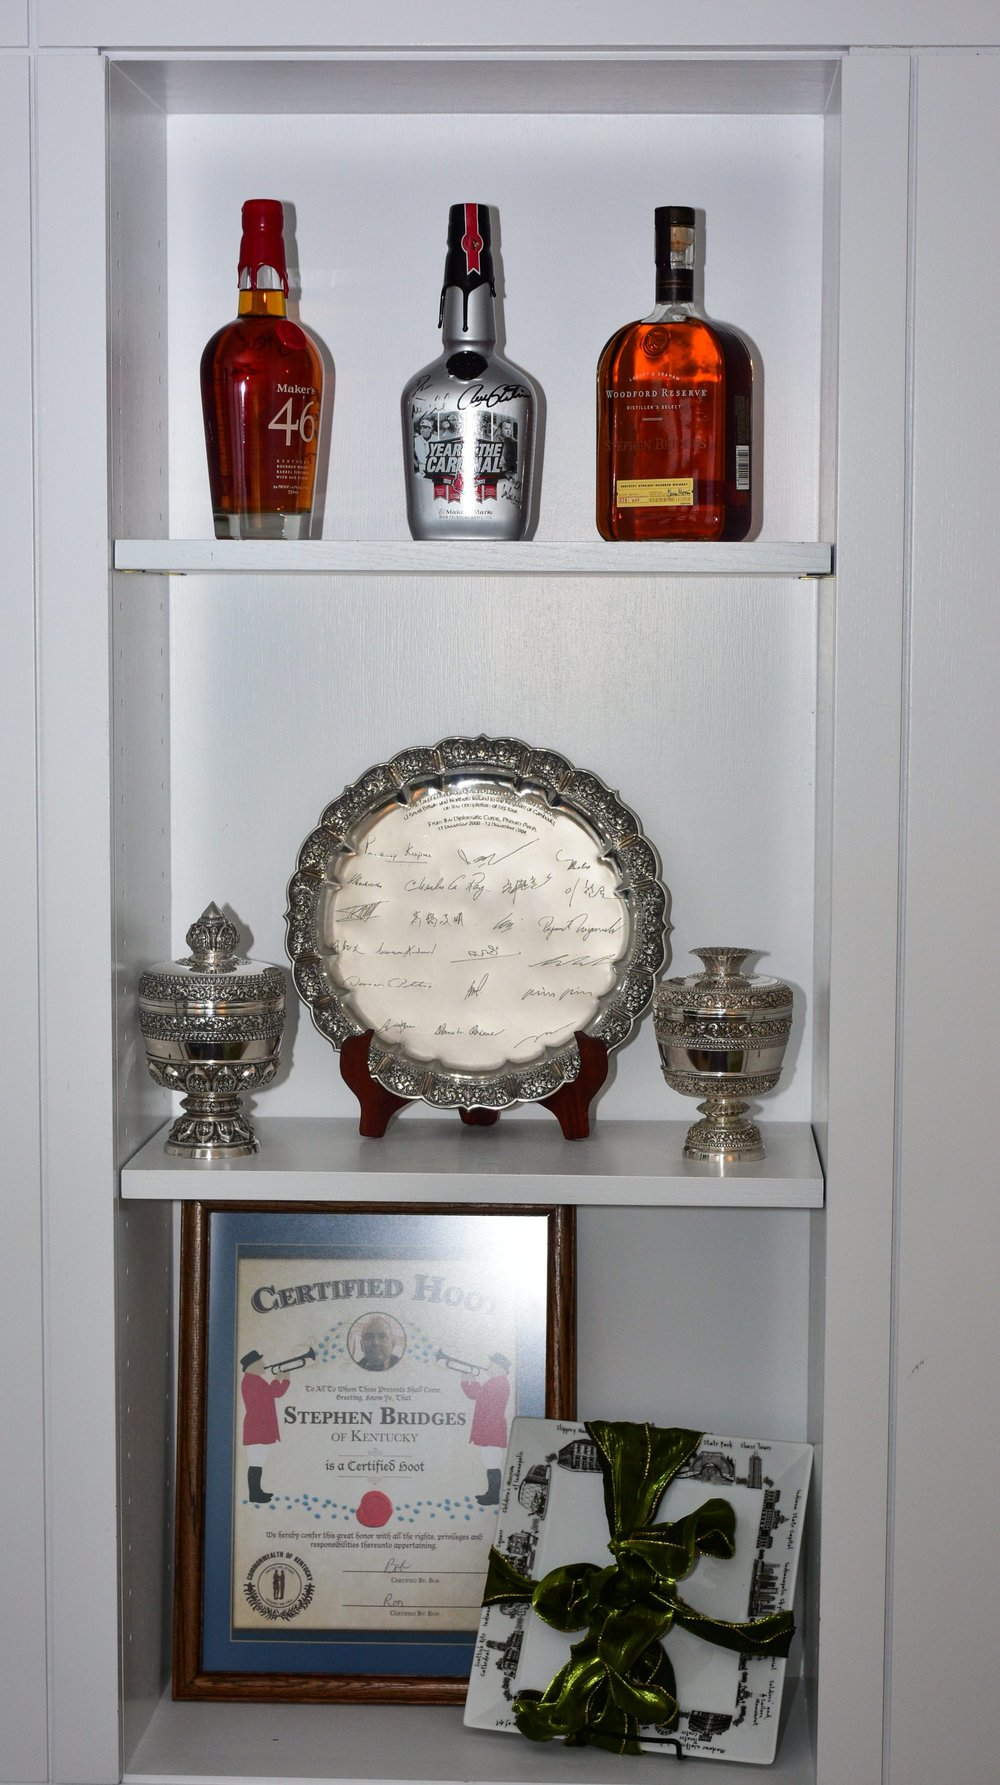 Great Britain Gay Men's Chorus Chicago Formatografia-8_batch.jpg